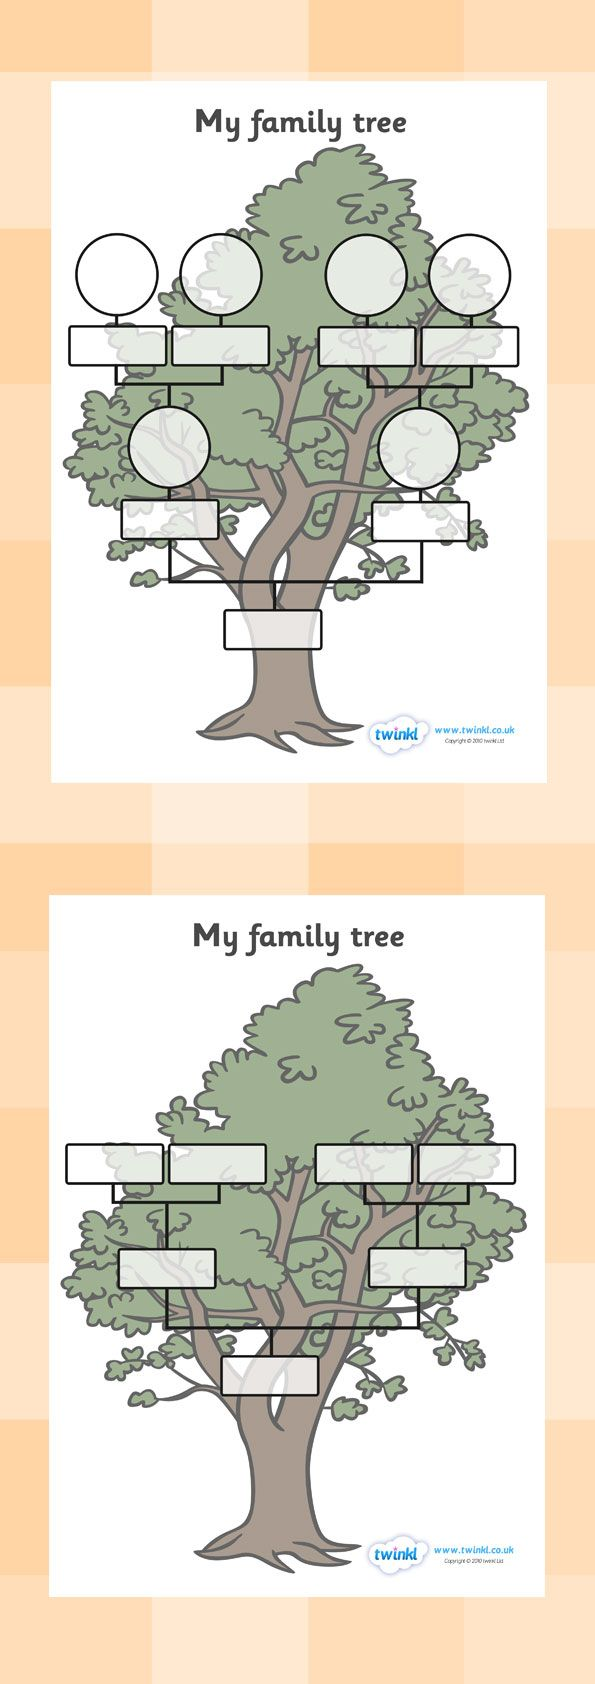 Twinkl Resources >> My Family Tree Worksheets  >> Thousands of printable primary teaching resources for EYFS, KS1, KS2 and beyond! family tree, family tree template, my family, parent, mum, dad, grandparent, grandma, grandad, family,